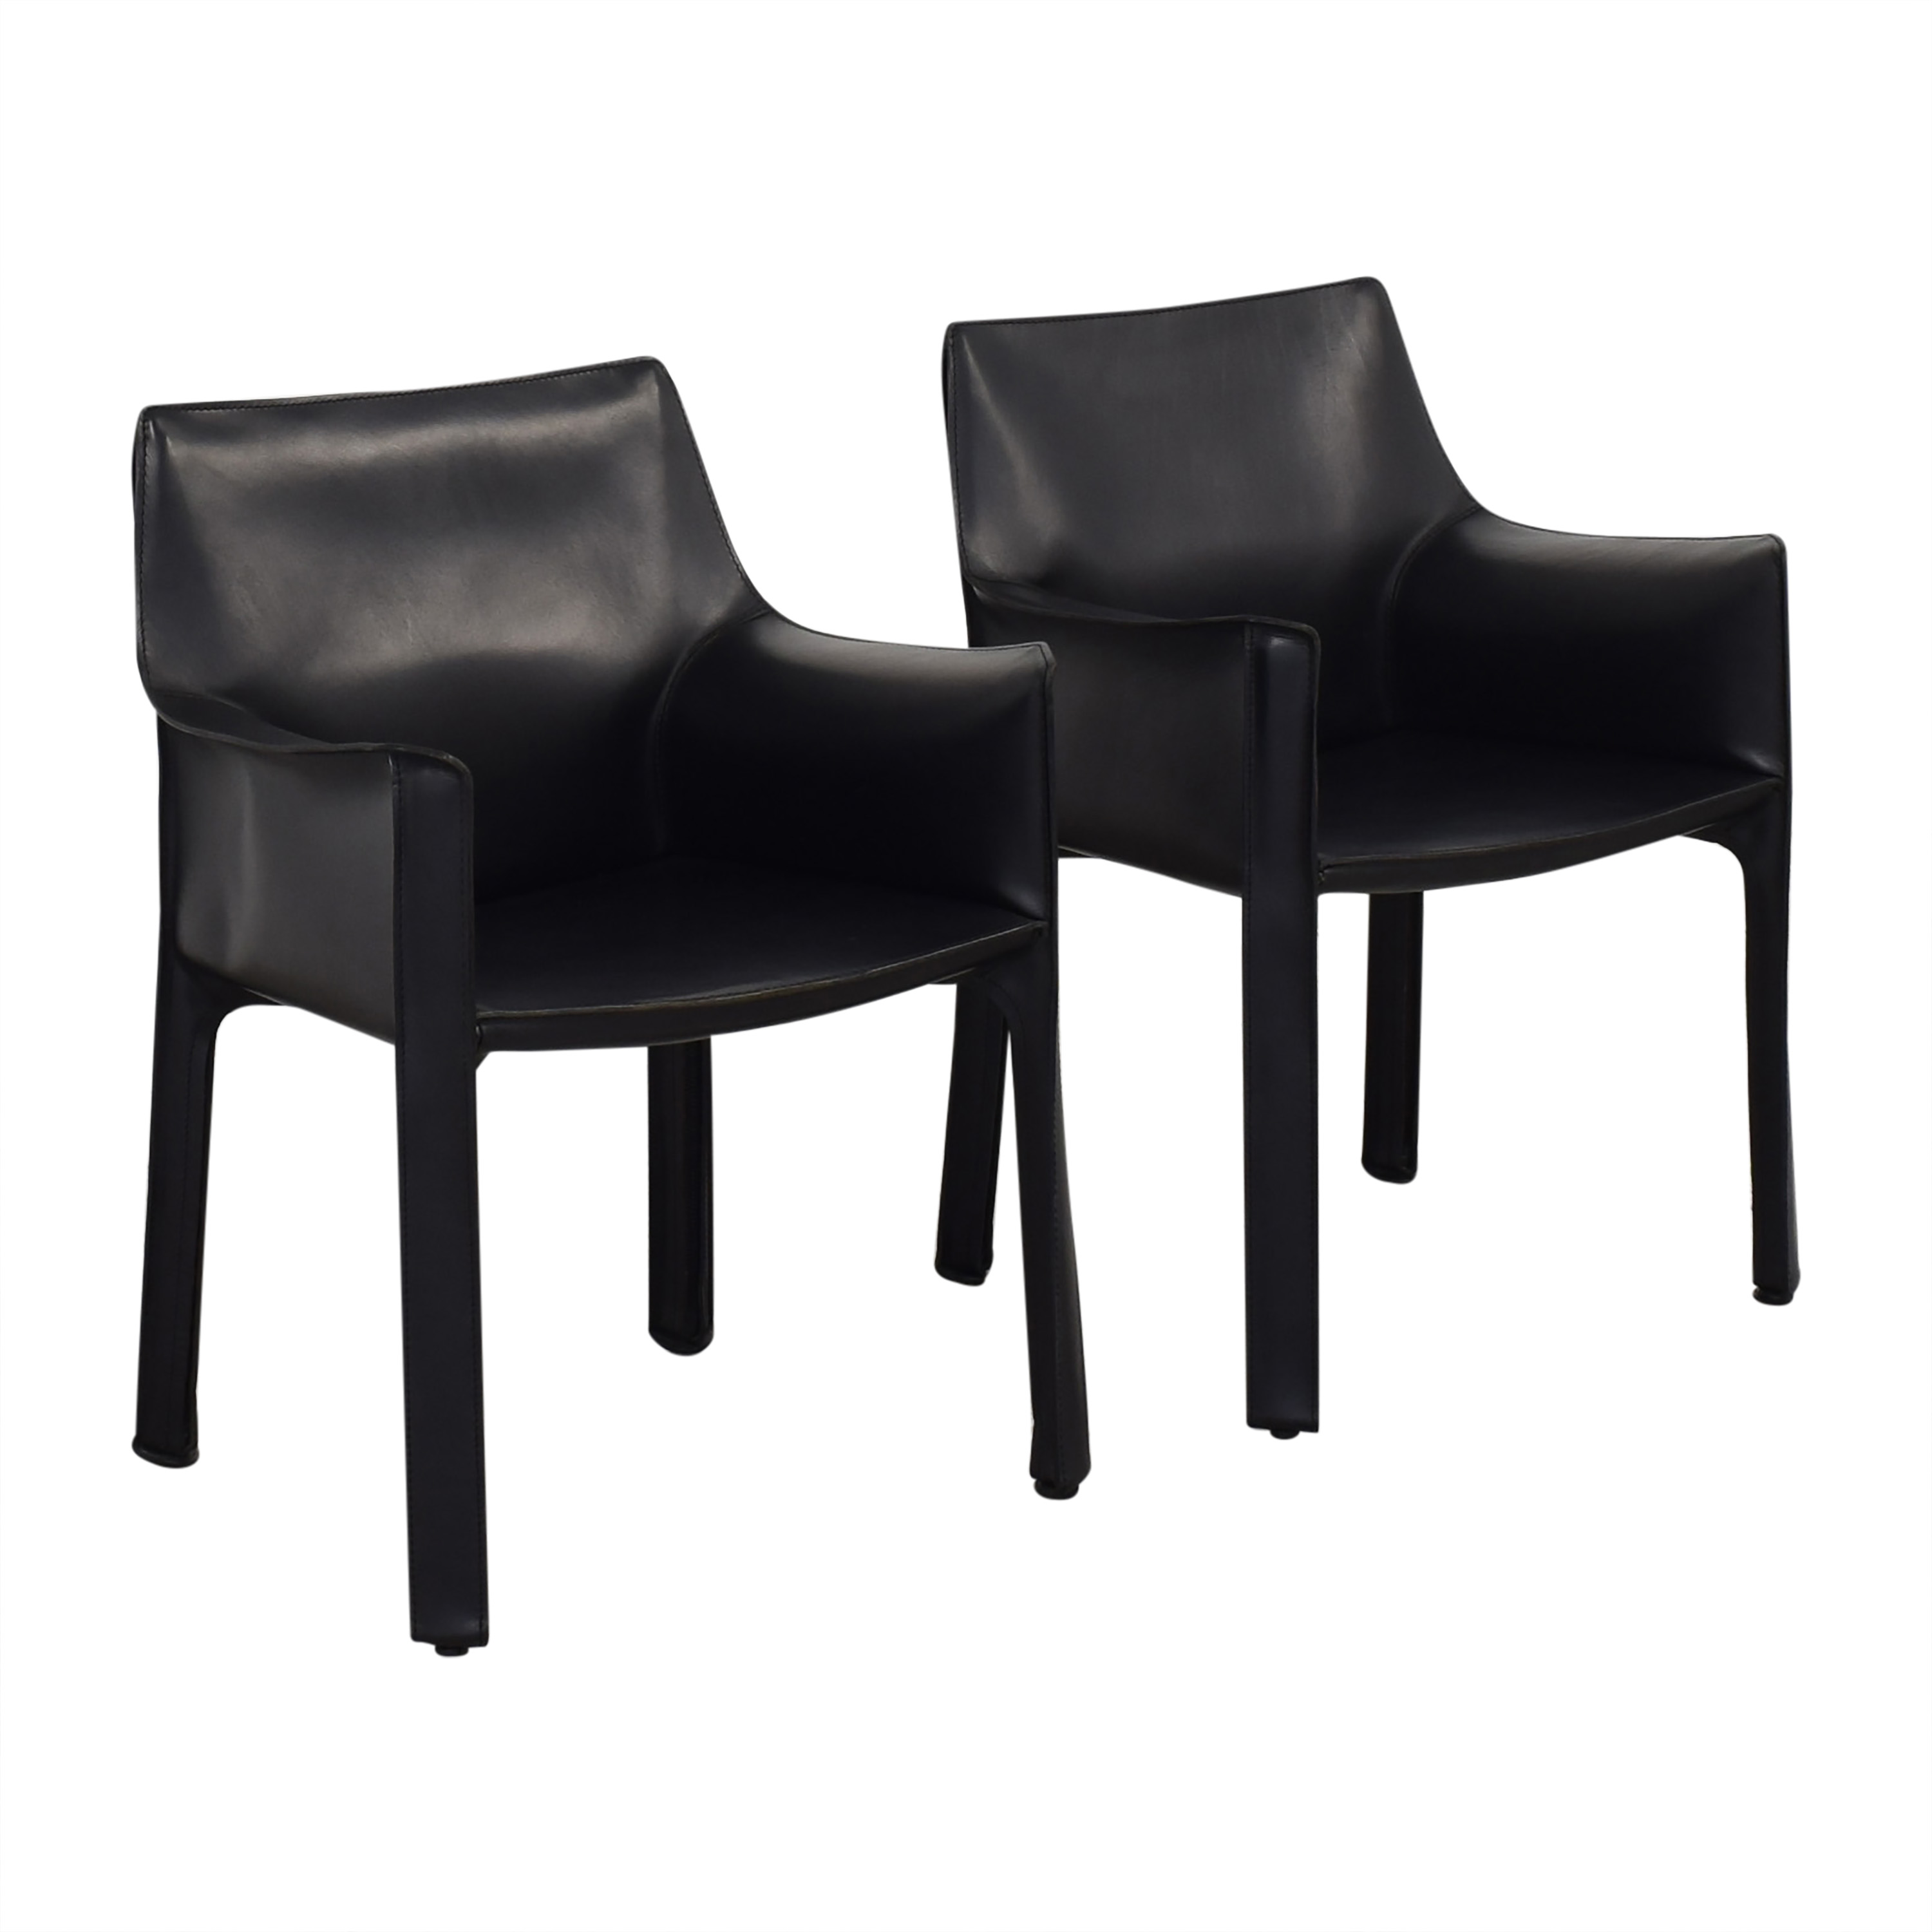 Cassina Cassina Mario Bellini Leather Cab Chairs Chairs